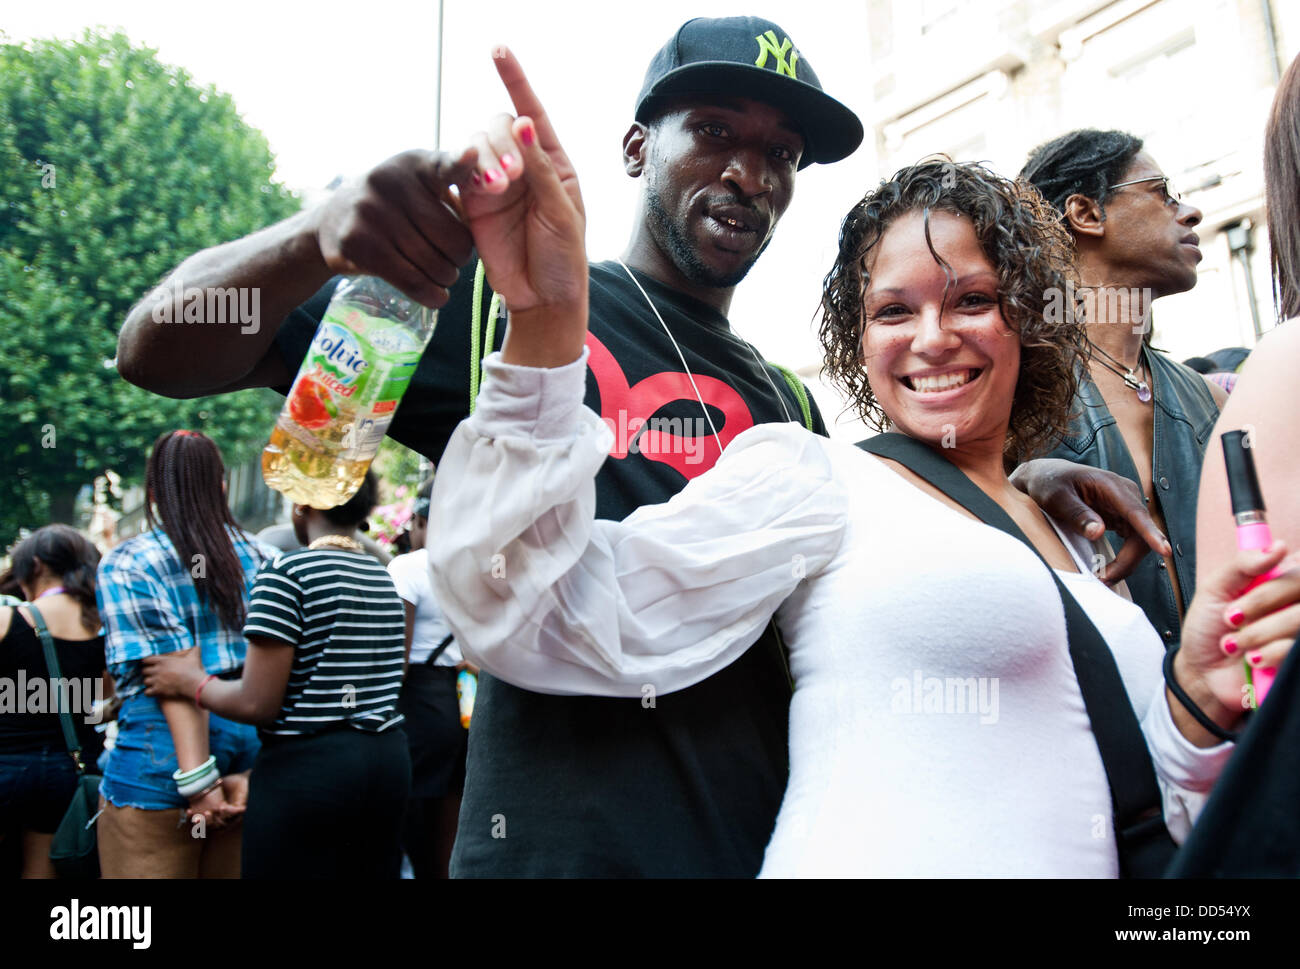 London, UK - 26 August 2013: two revellers dance for the camera during the annual parade at the Notting Hill Carnival. - Stock Image